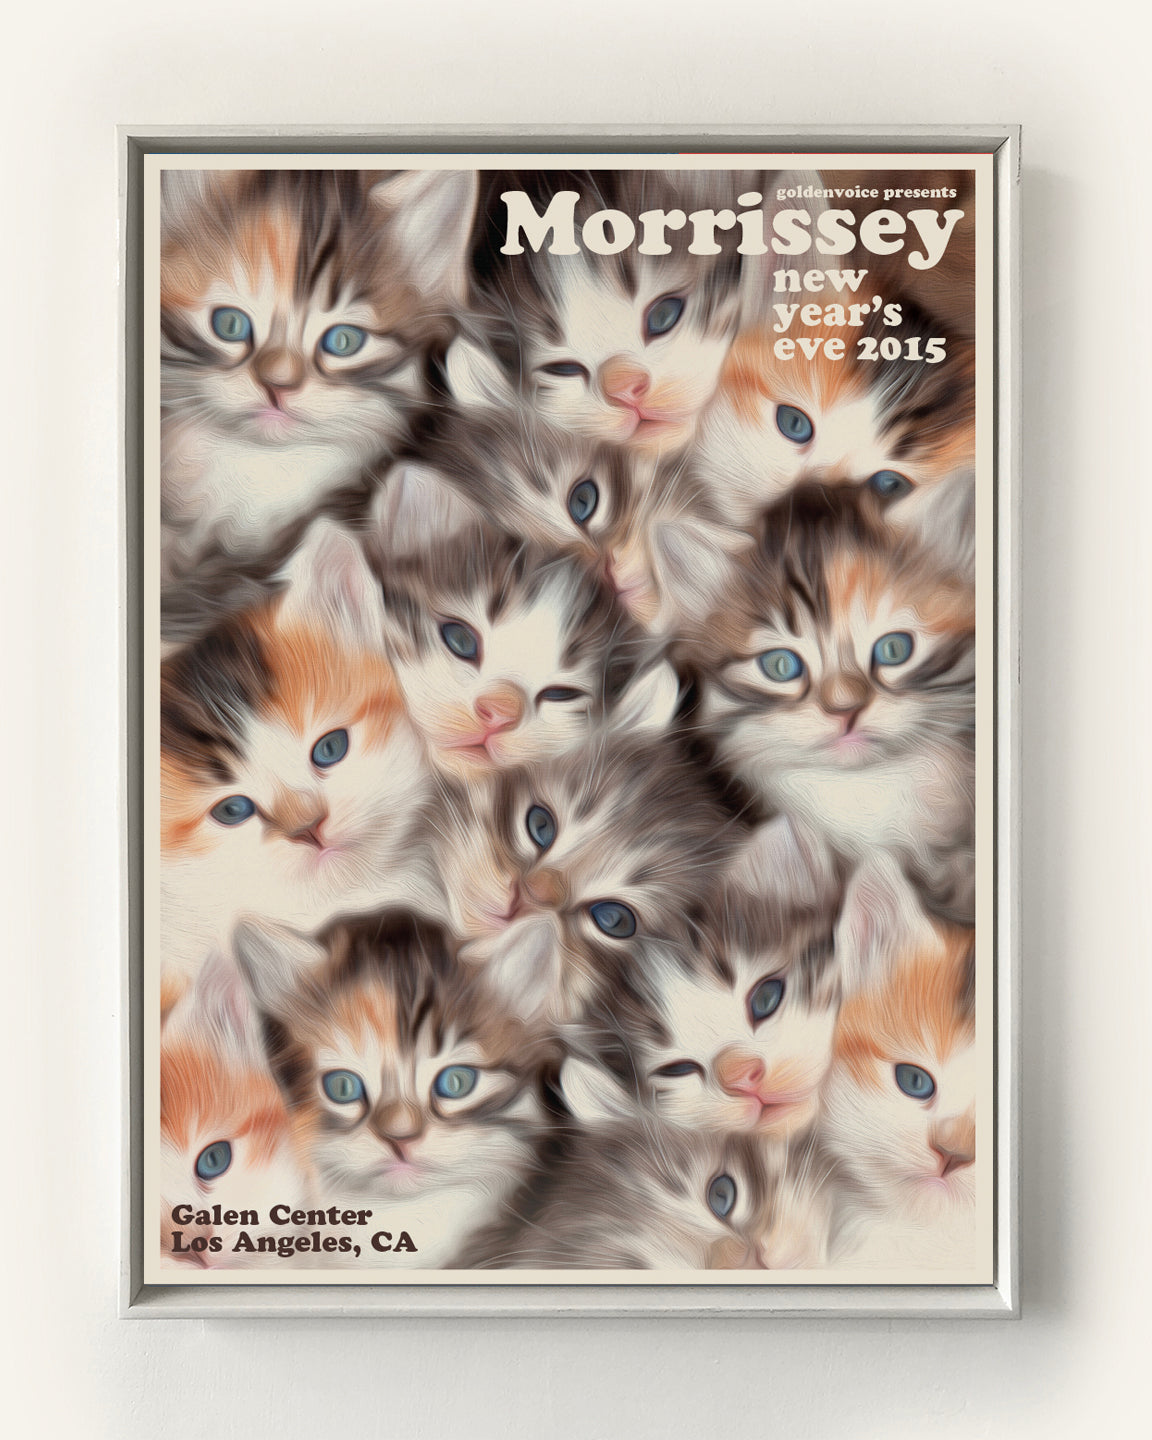 MORRISSEY - GALEN CENTER